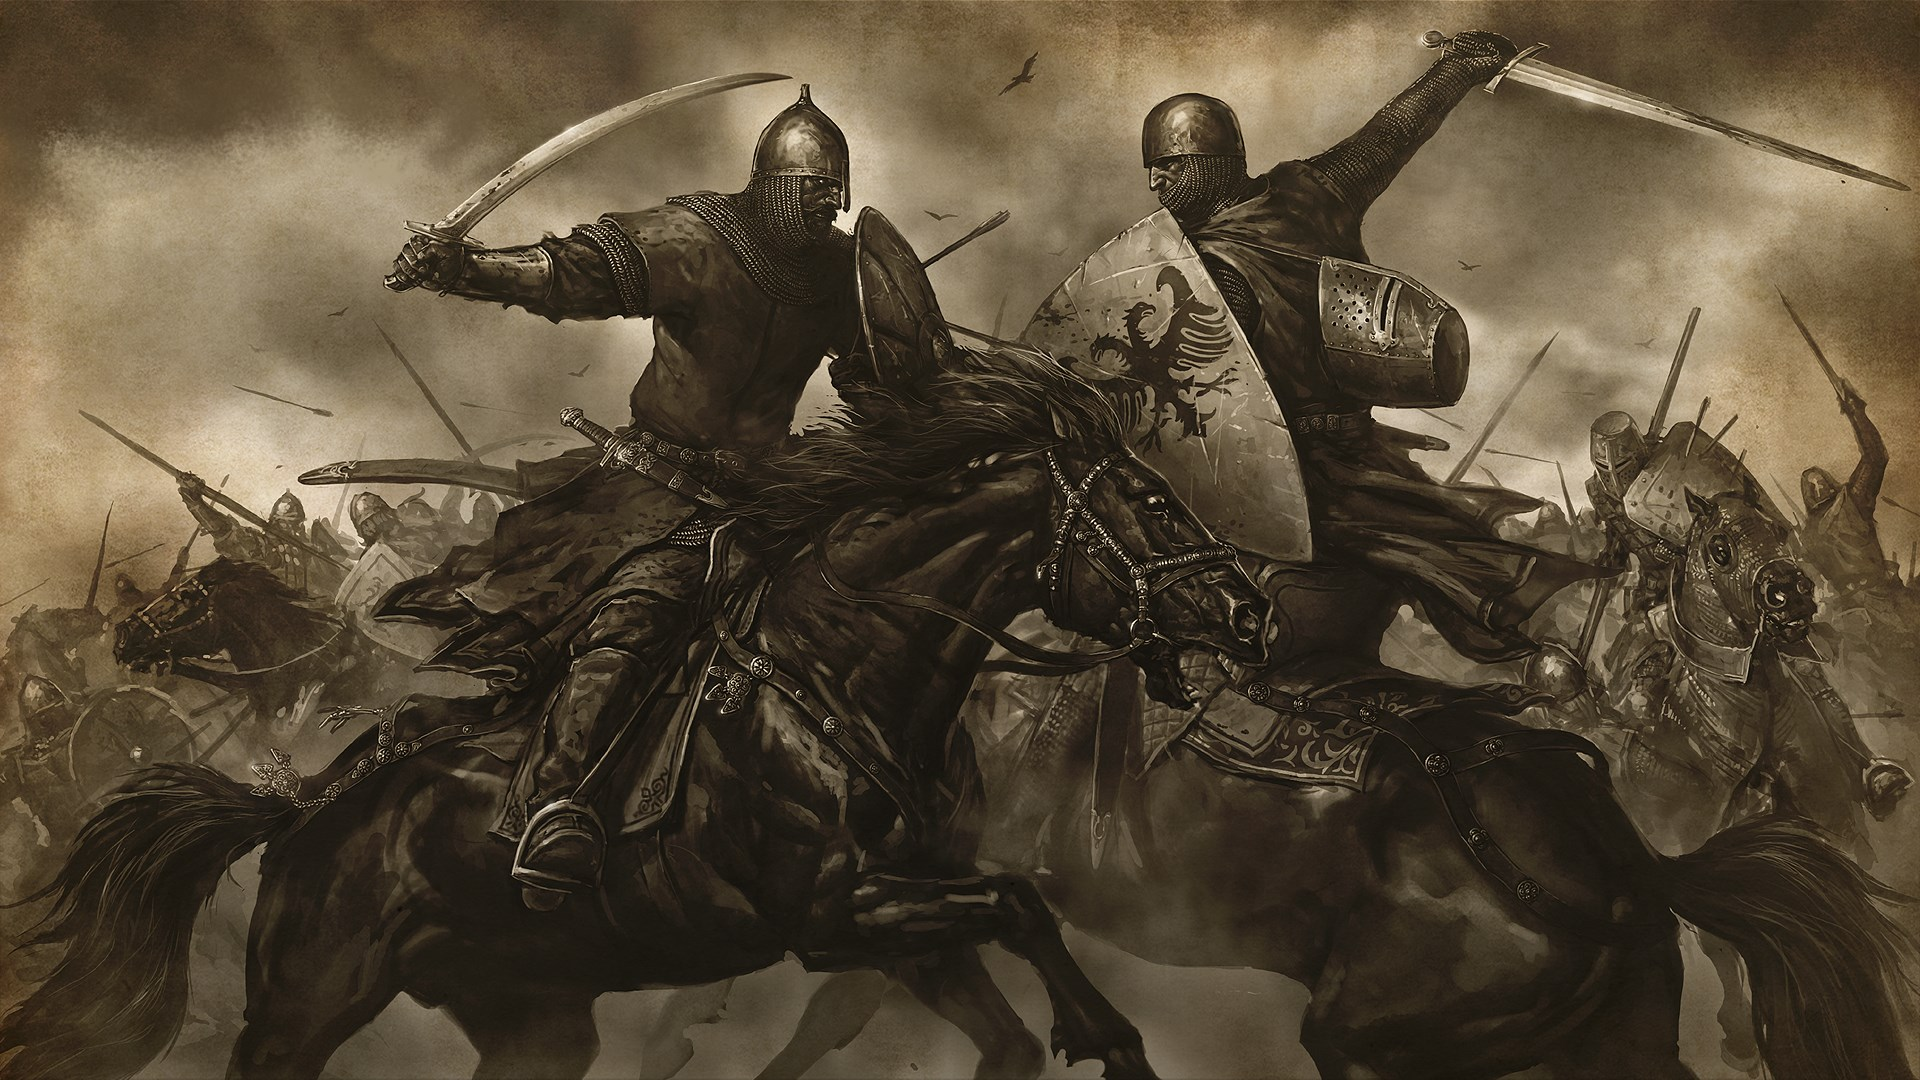 Mount And Blade Wallpaper 1920x1080 posted by Christopher Peltier